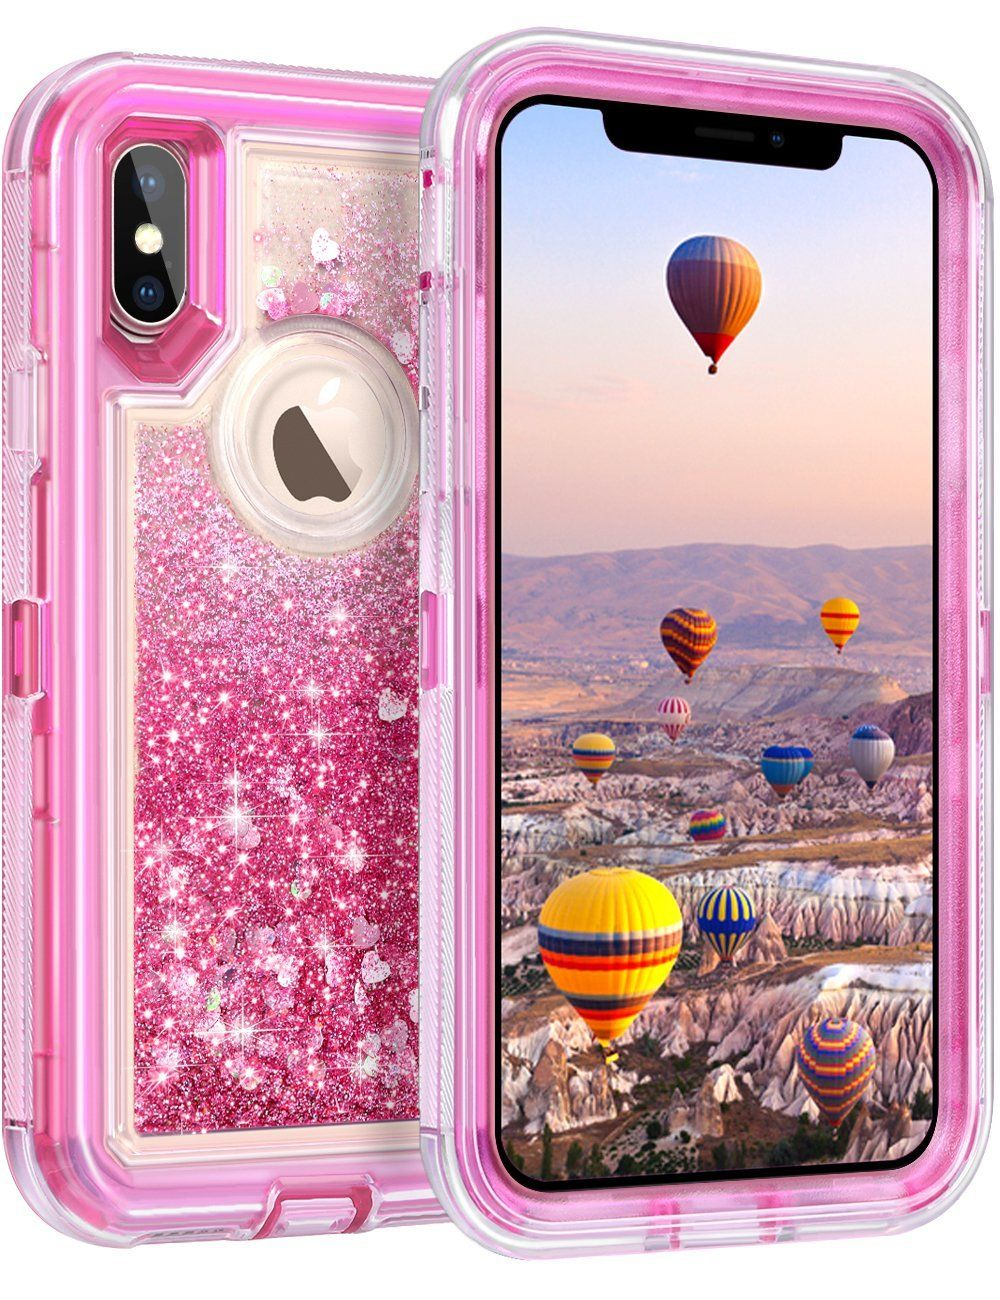 iPhone X Case 400bea0642e9